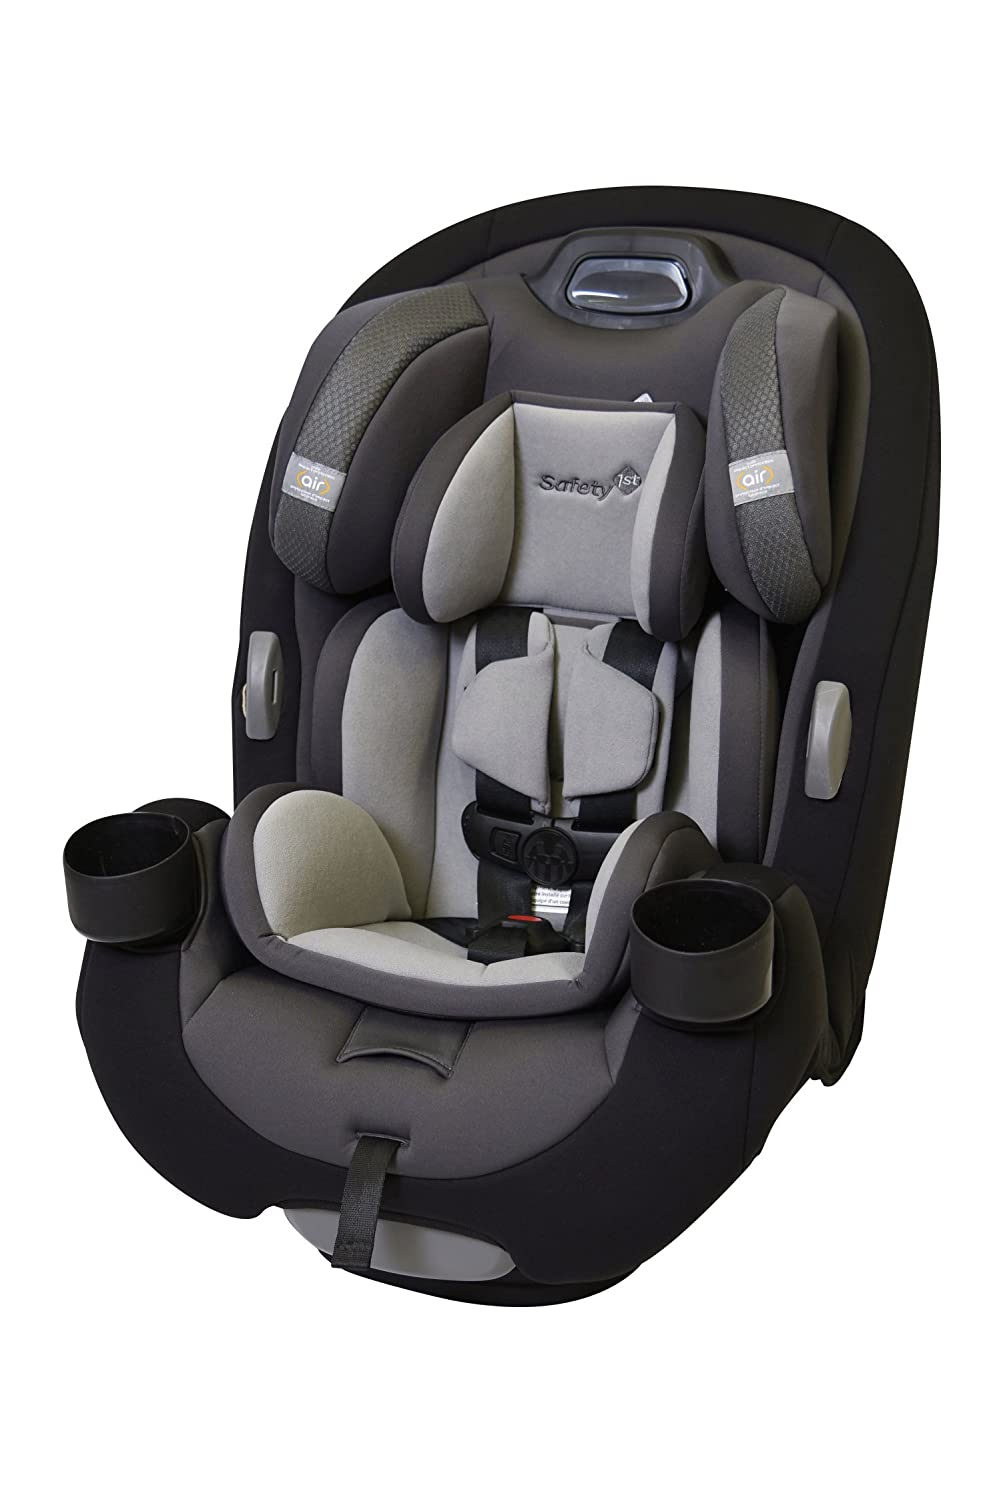 Safety 1st Grow N Go Air 3-In-1 Car Seat, Epic Dorel Juvenile 22695CEPI